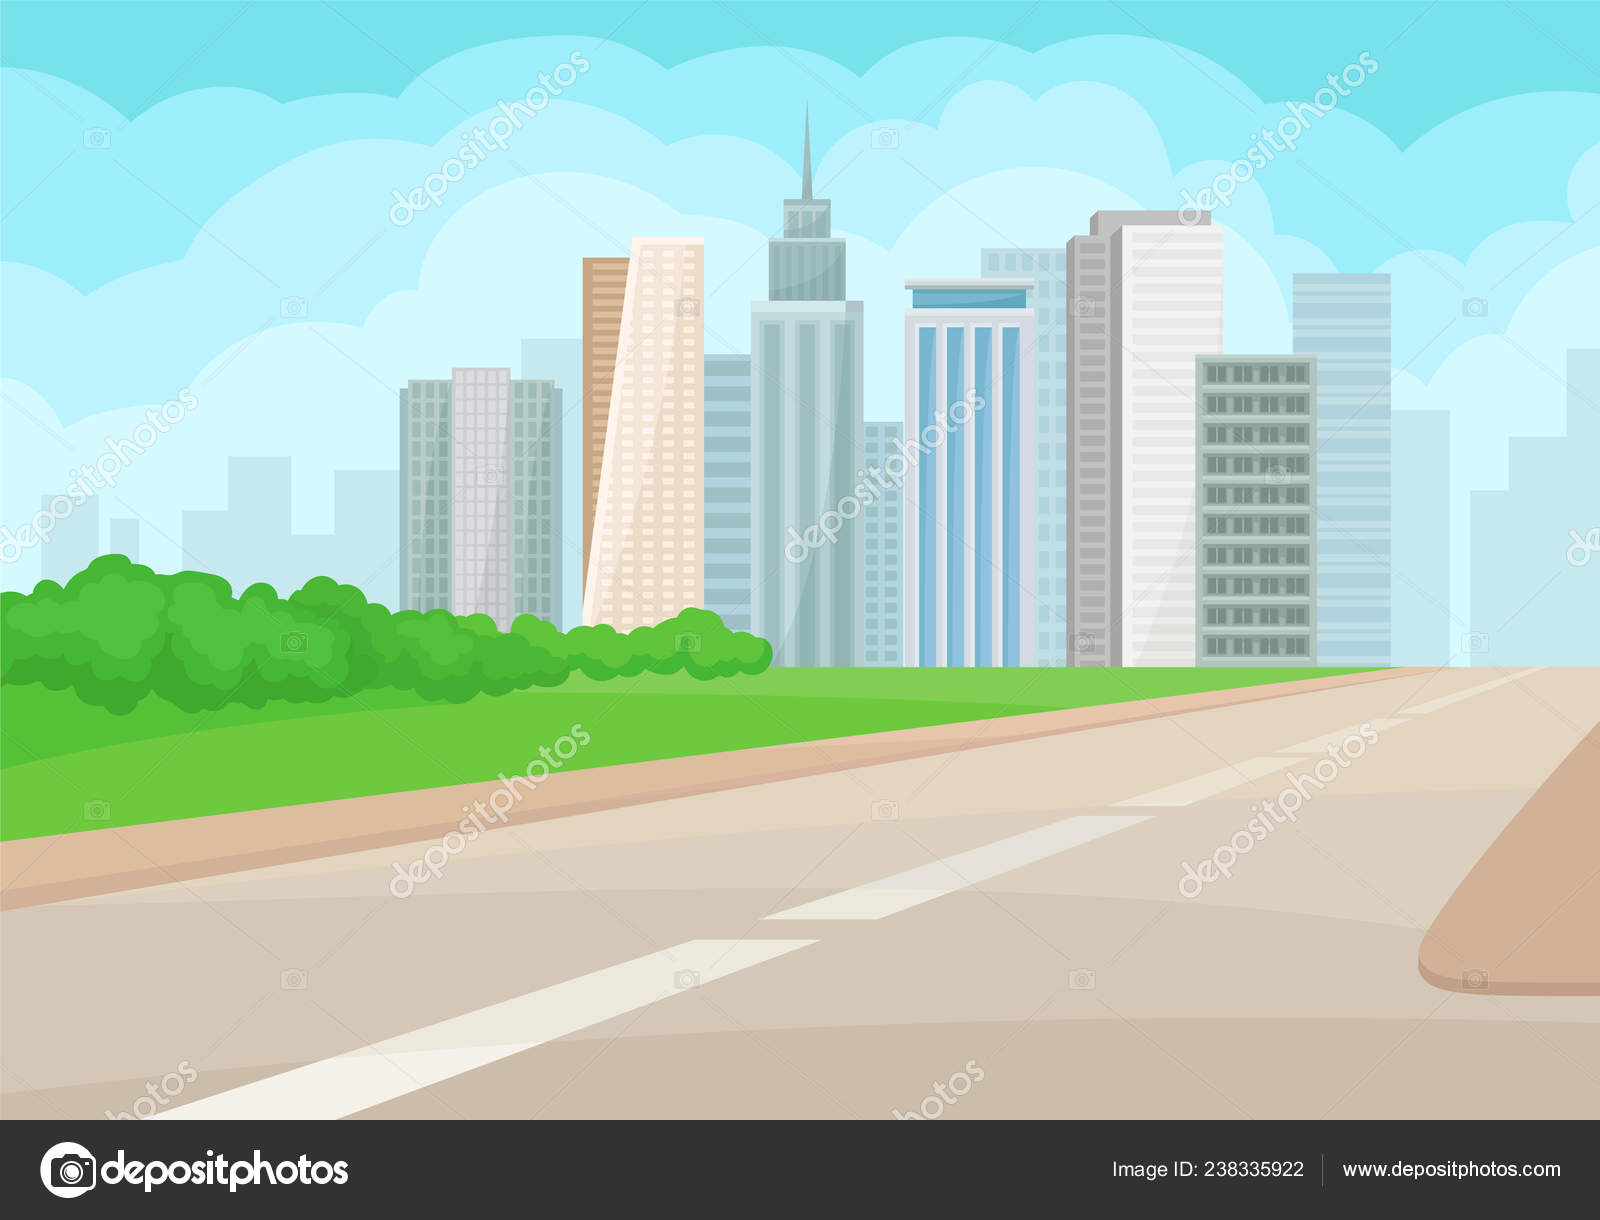 Urban Landscape With Road High Rise Buildings Green Grass And